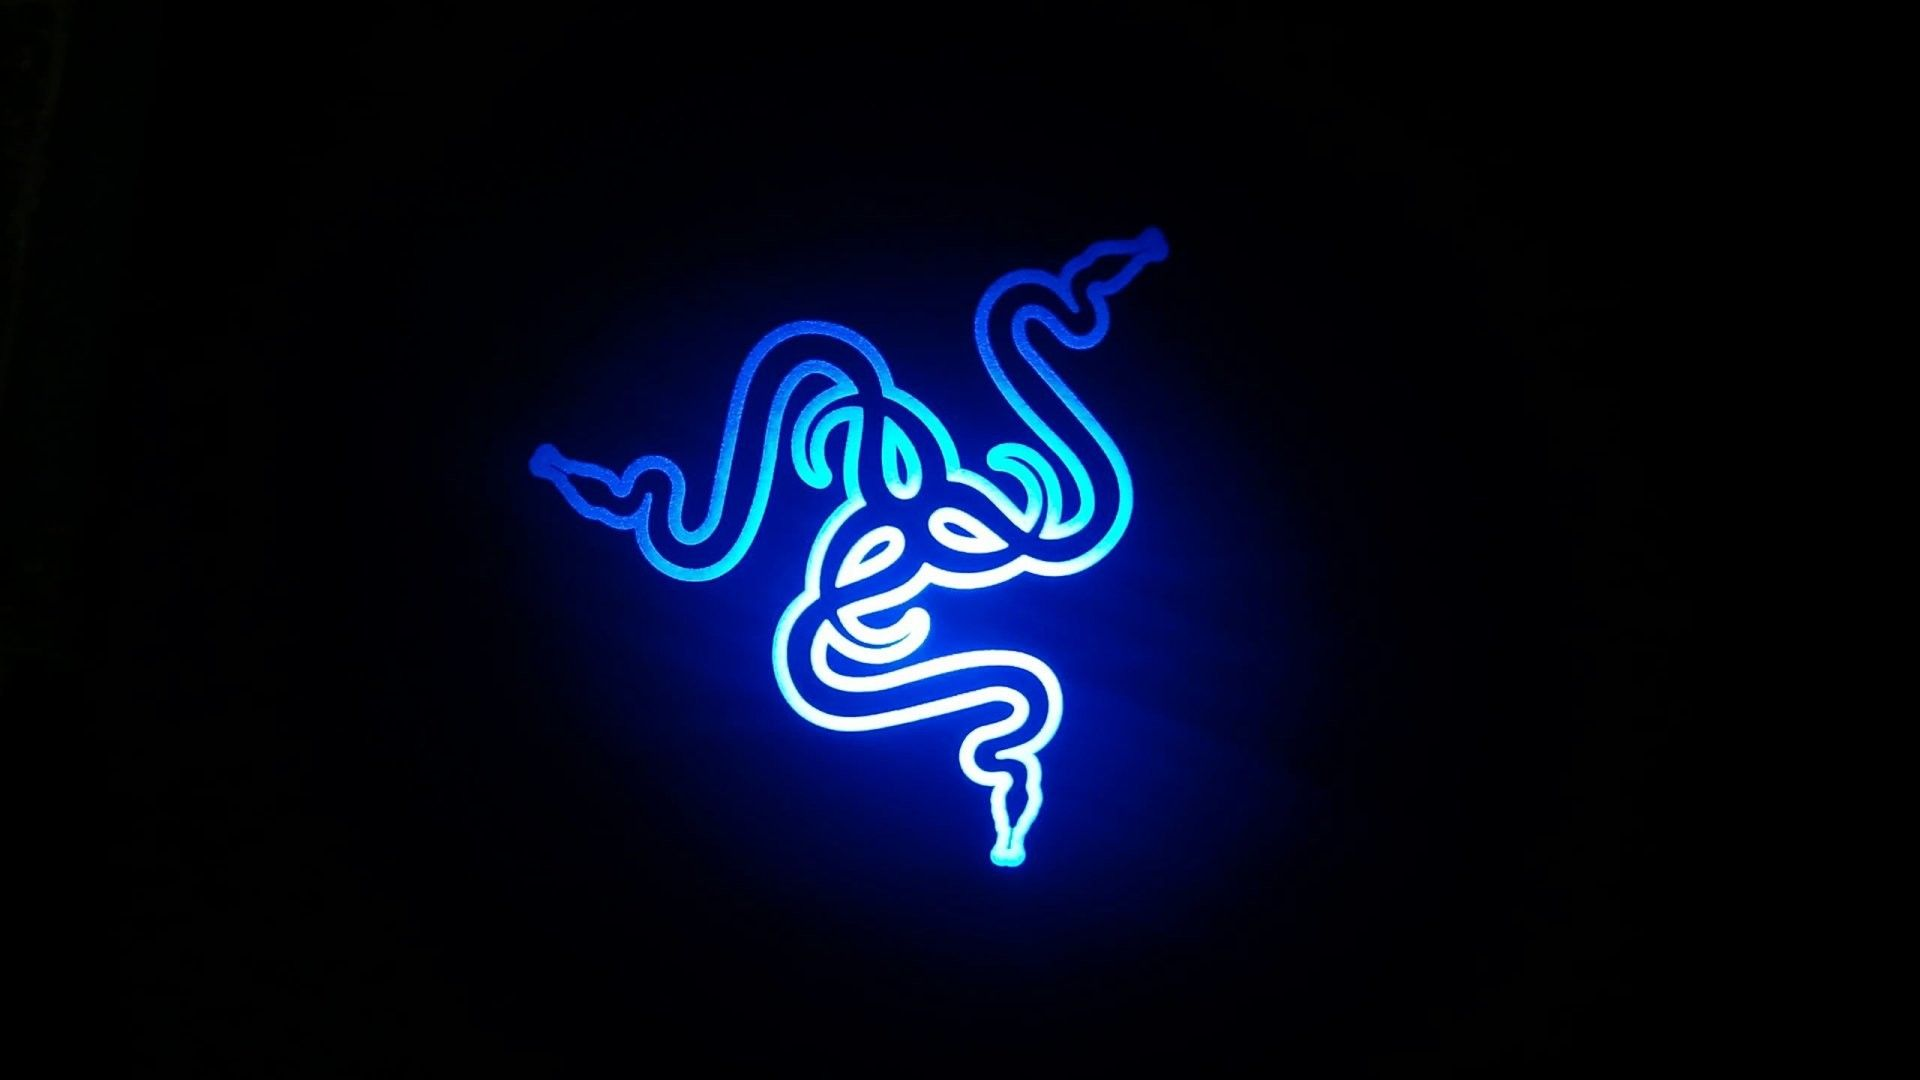 Res 1920x1080 Razer Neon Blue Wallpapers Gaming Wallpapers Black Phone Wallpaper Desktop Wallpaper